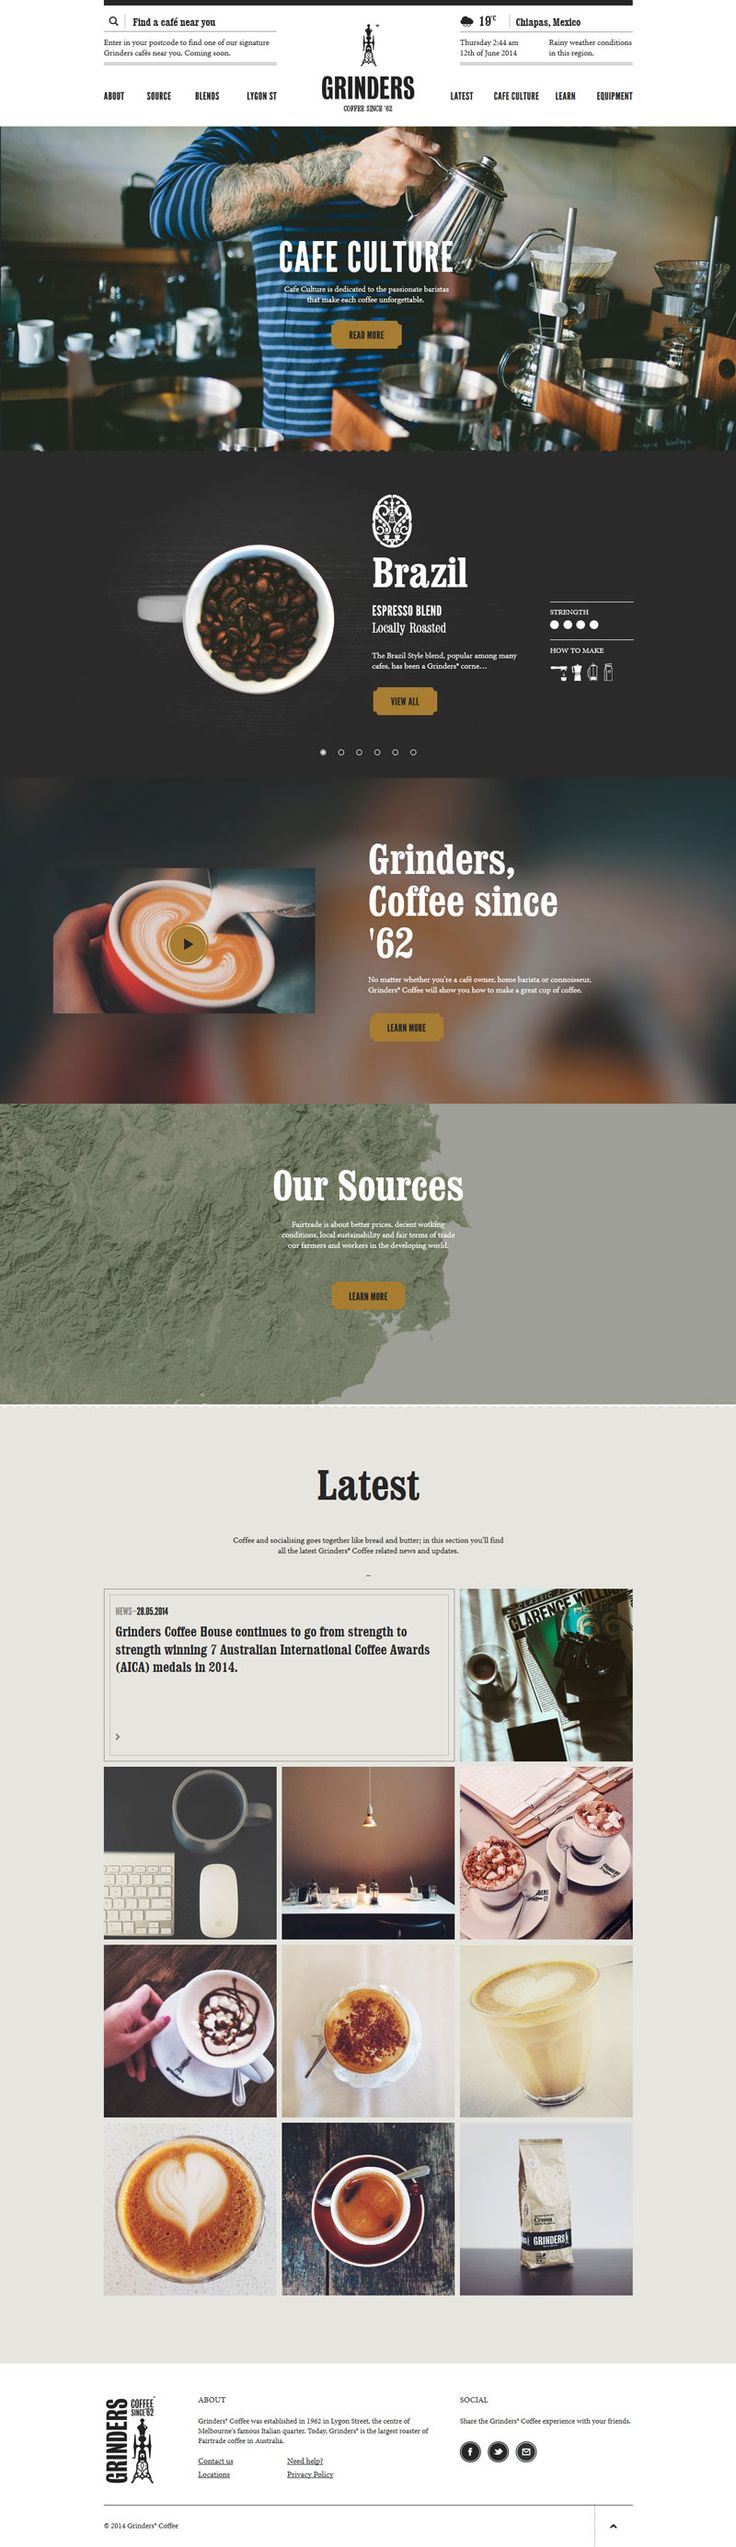 Grinders Coffee House | #webdesign #it #web #design #layout #userinterface #website #webdesign repinned by www.BlickeDeeler.de | Visit our website www.blickedeeler.de/leistungen/webdesign